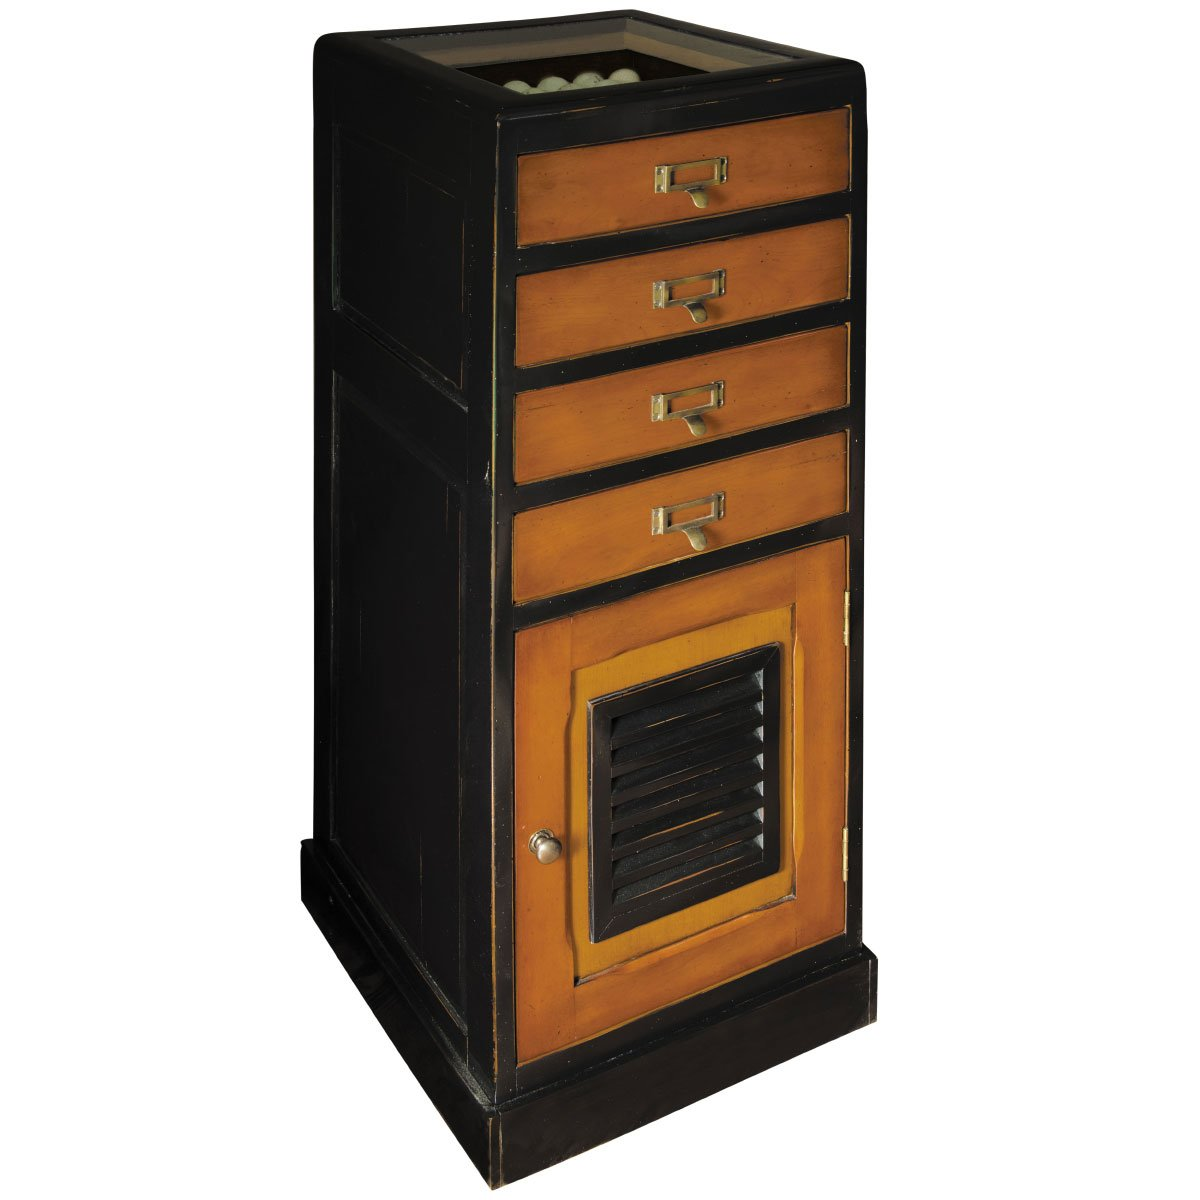 Caddie Cabinet by Inviting Home, Inc.